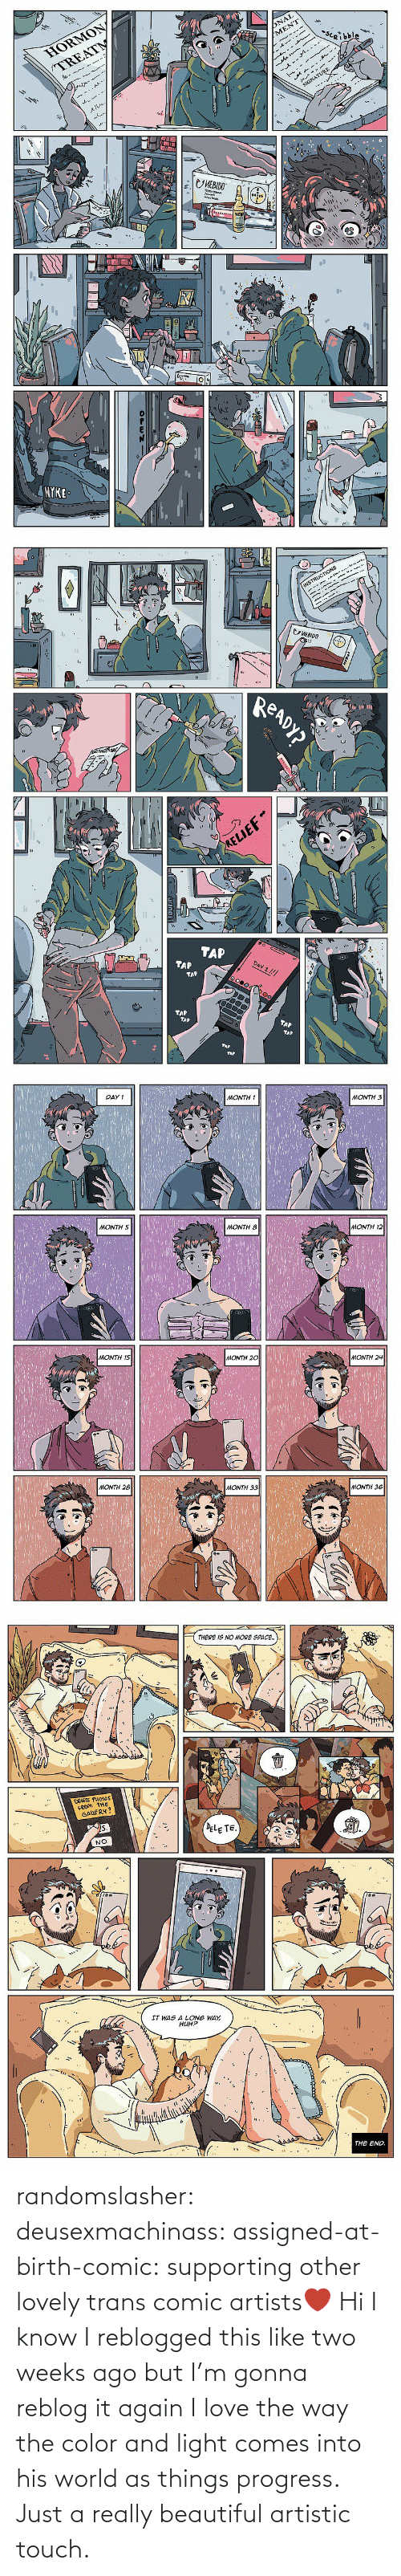 the way: randomslasher: deusexmachinass:  assigned-at-birth-comic: supporting other lovely trans comic artists❤  Hi I know I reblogged this like two weeks ago but I'm gonna reblog it again  I love the way the color and light comes into his world as things progress. Just a really beautiful artistic touch.